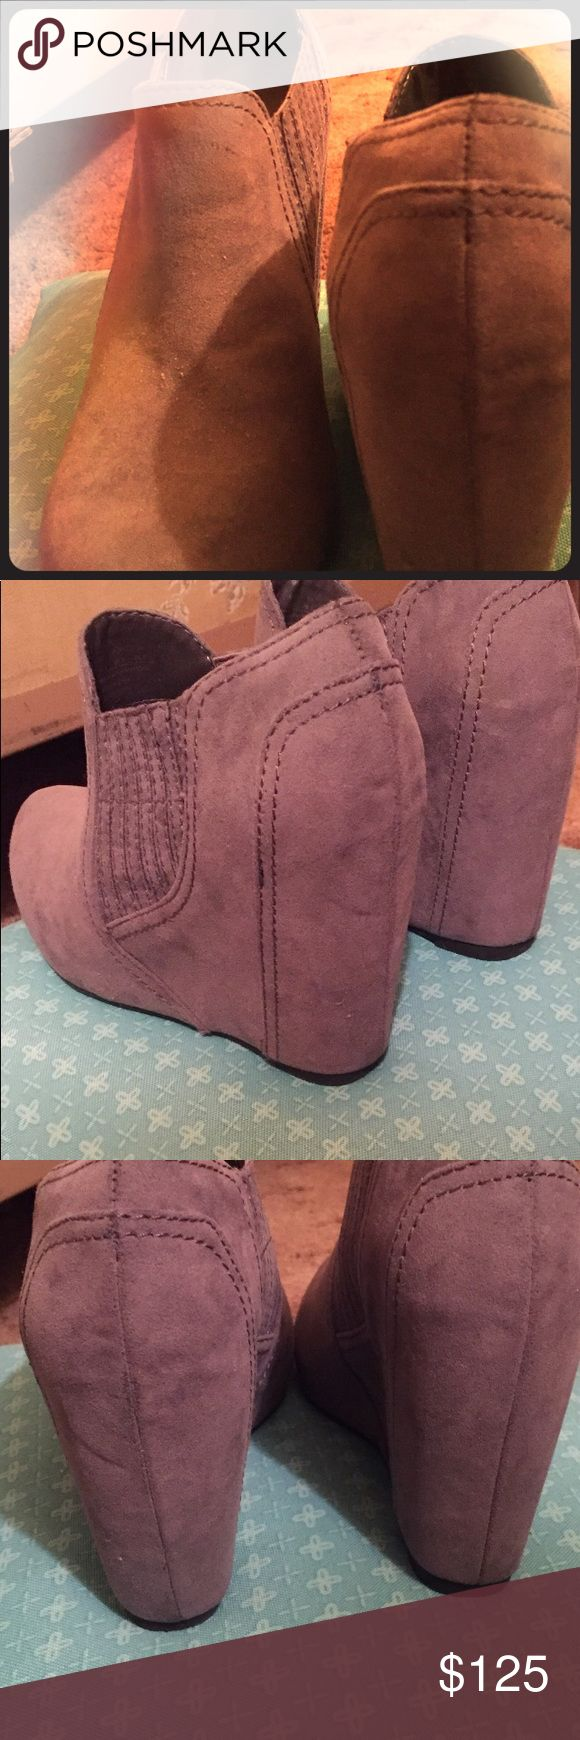 Women's Wedge Ankle Suede-like Stylish Booties Worn once. Not a fit for me.  Style is Downtown, an Urban Chic look!  They're fresh, cute and so stylish - for a woman wanting to make a cool statement. Date night, any night or day, have fun and be bold in these BOOTIES! Fergalicious Shoes Ankle Boots & Booties